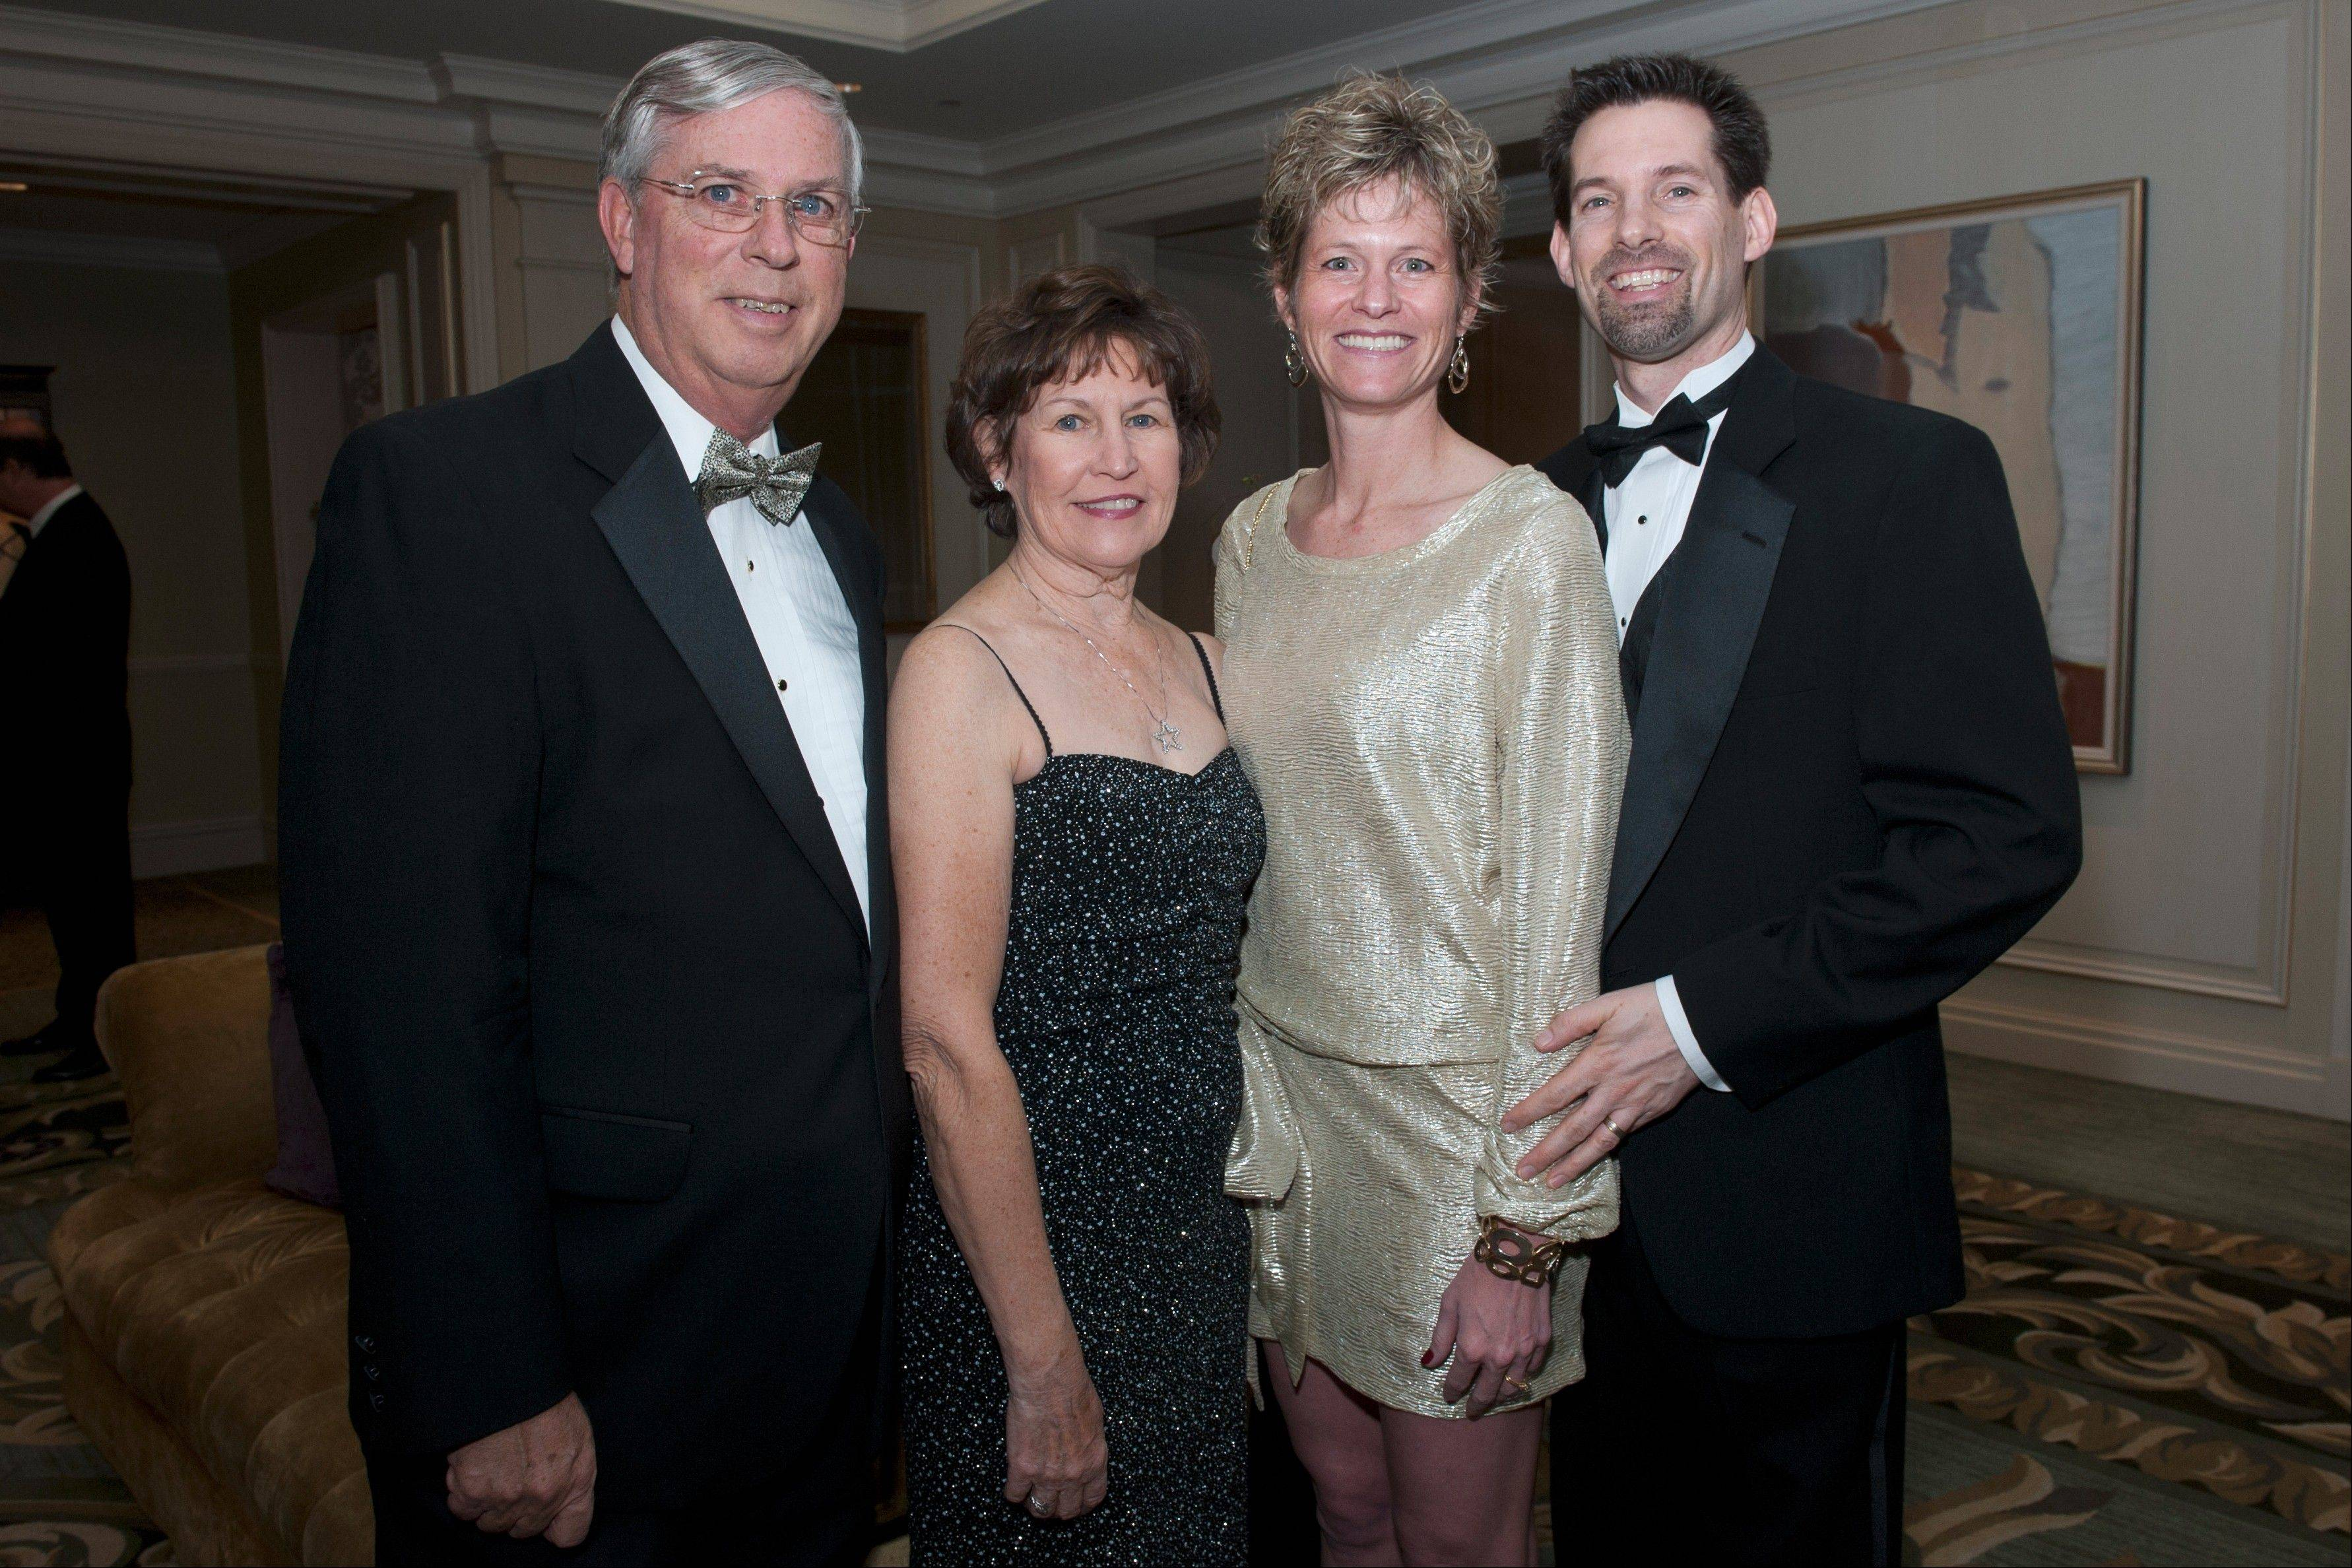 David and Linda Riley of Barrington, on left, and with their son Kevin, far right, and his wife Amy, of Chicago, were among the more than 300 guests to attend the record-breaking Clearbrook Shining Star Ball this weekend. David Riley is a former Clearbrook board chairman, Linda Riley was on he ball's planning committee this year and Kevin Riley is on the organization's associate board.